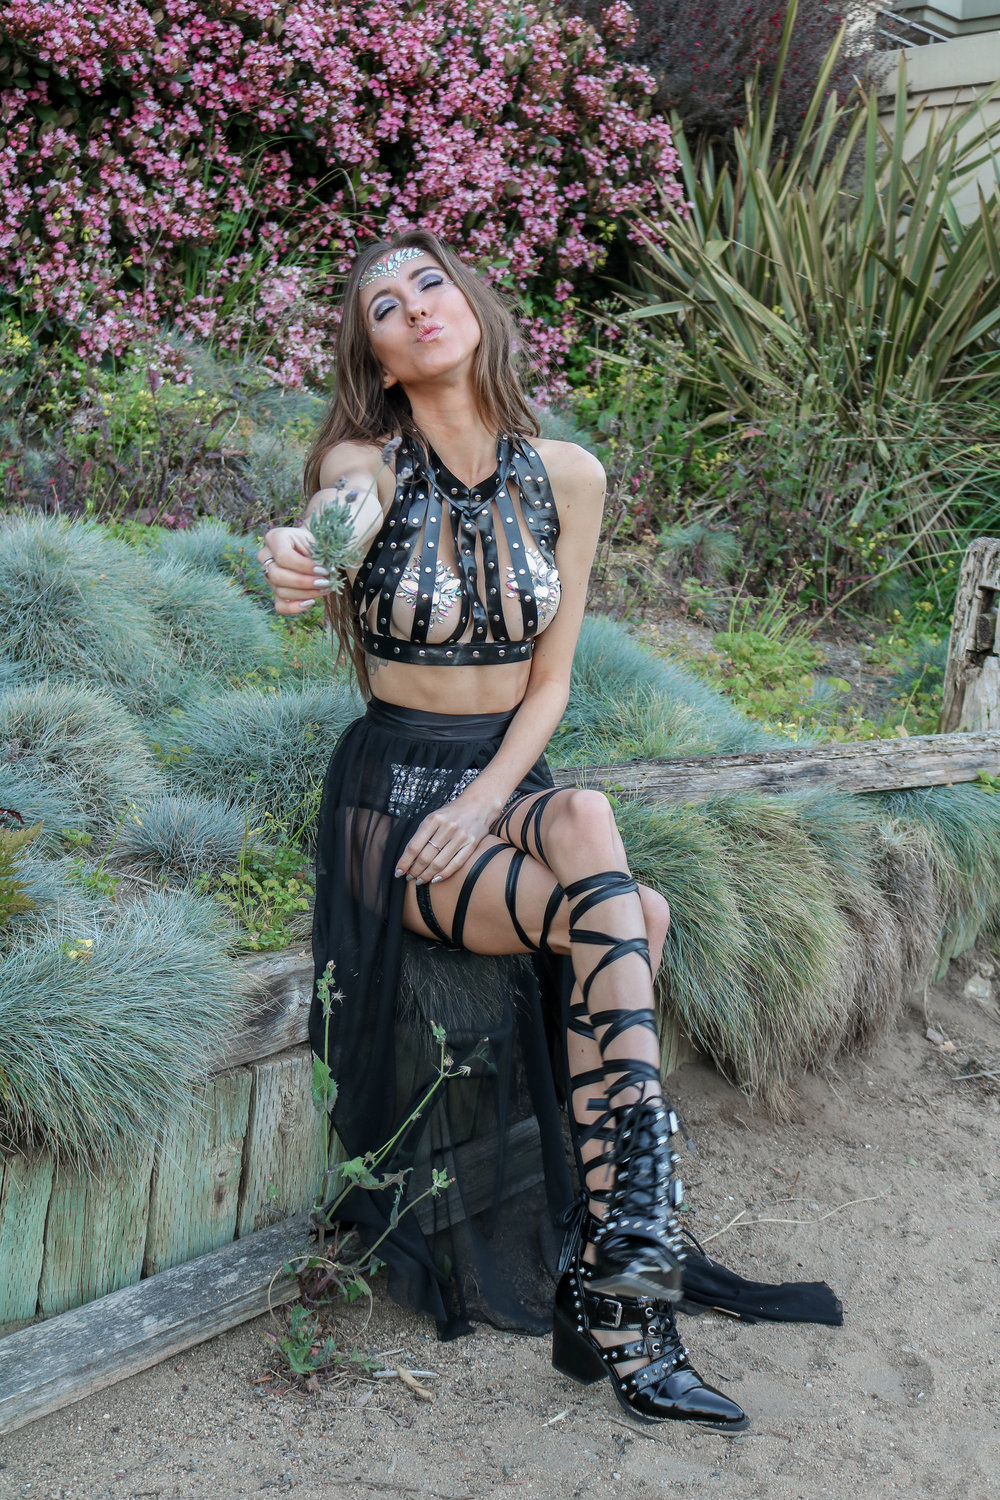 The+Hungarian+Brunette+EDC+Meets+Coachella+festival+outfit+with+Iheartraves%2C+leather+harness%2C+bejewelled+booty+shorts%2C+leg+wraps